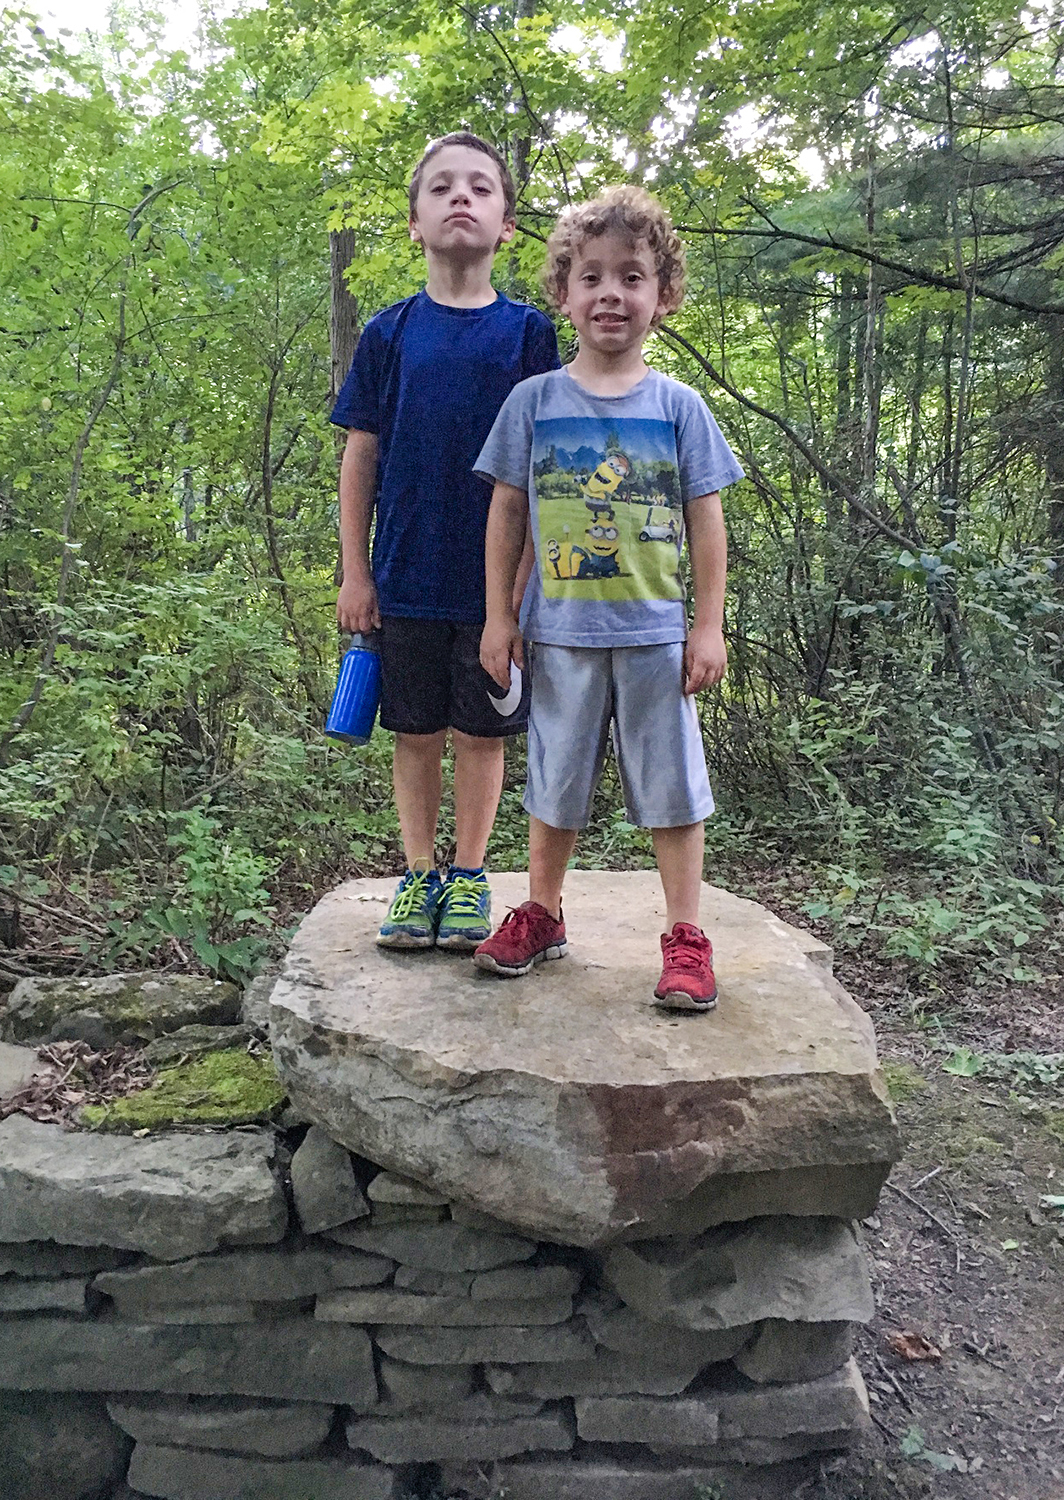 The Boys explore a stone structure at Bozen Kill on a summer evening.